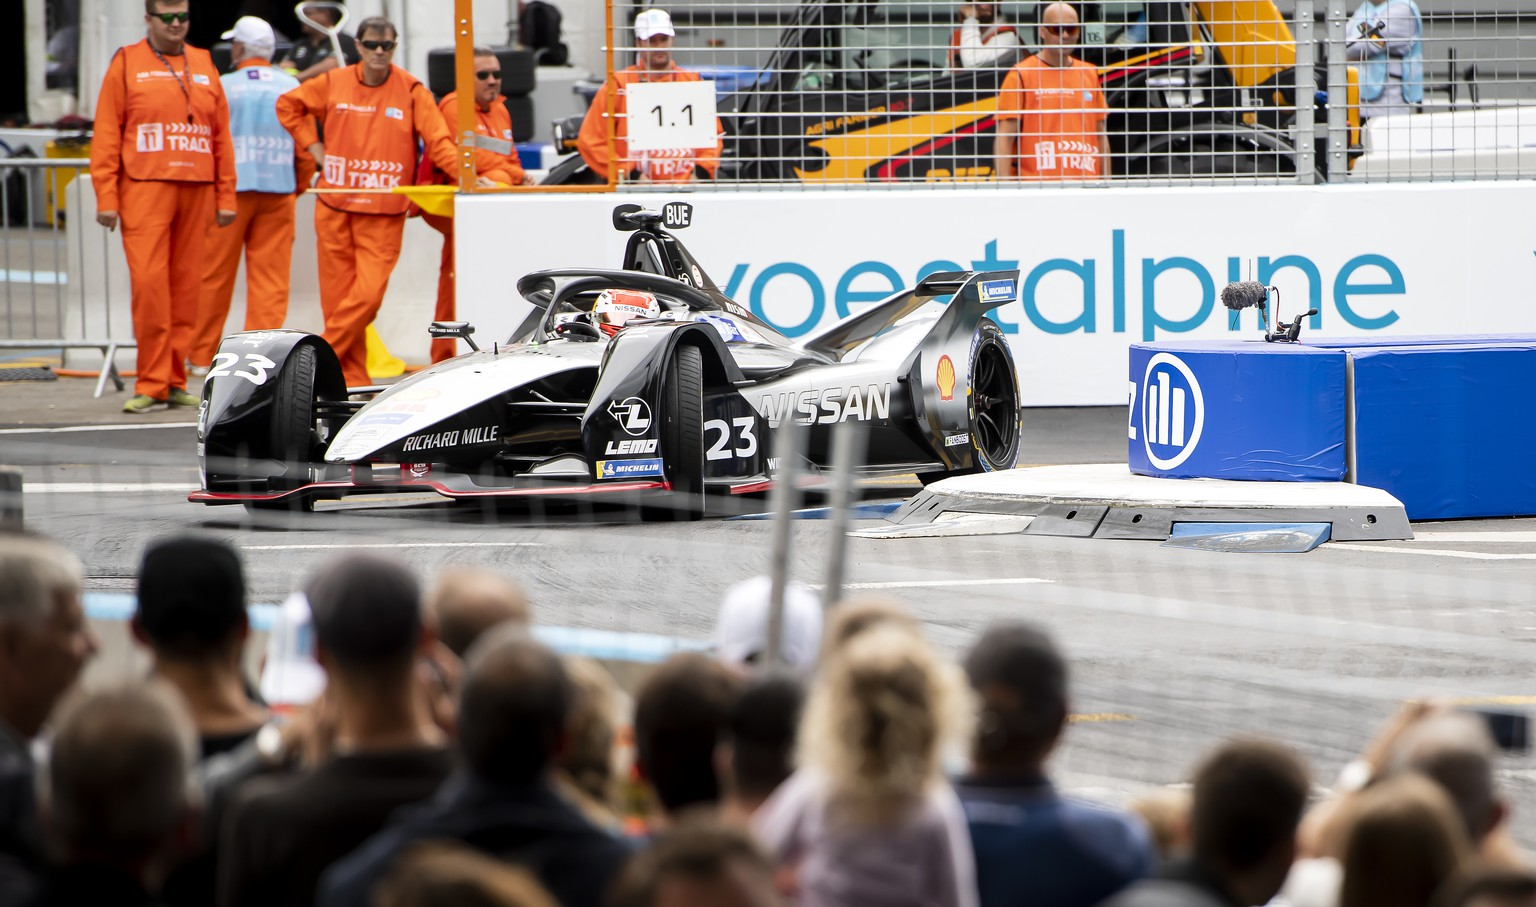 Swiss driver Sebastien Buemi, Nissan e.dams, competes during the second training session at the Bern E-Prix, the eleventh stage of the ABB FIA Formula E championship, in Bern Switzerland, Saturday, June 22, 2019. (KEYSTONE/Anthony Anex)